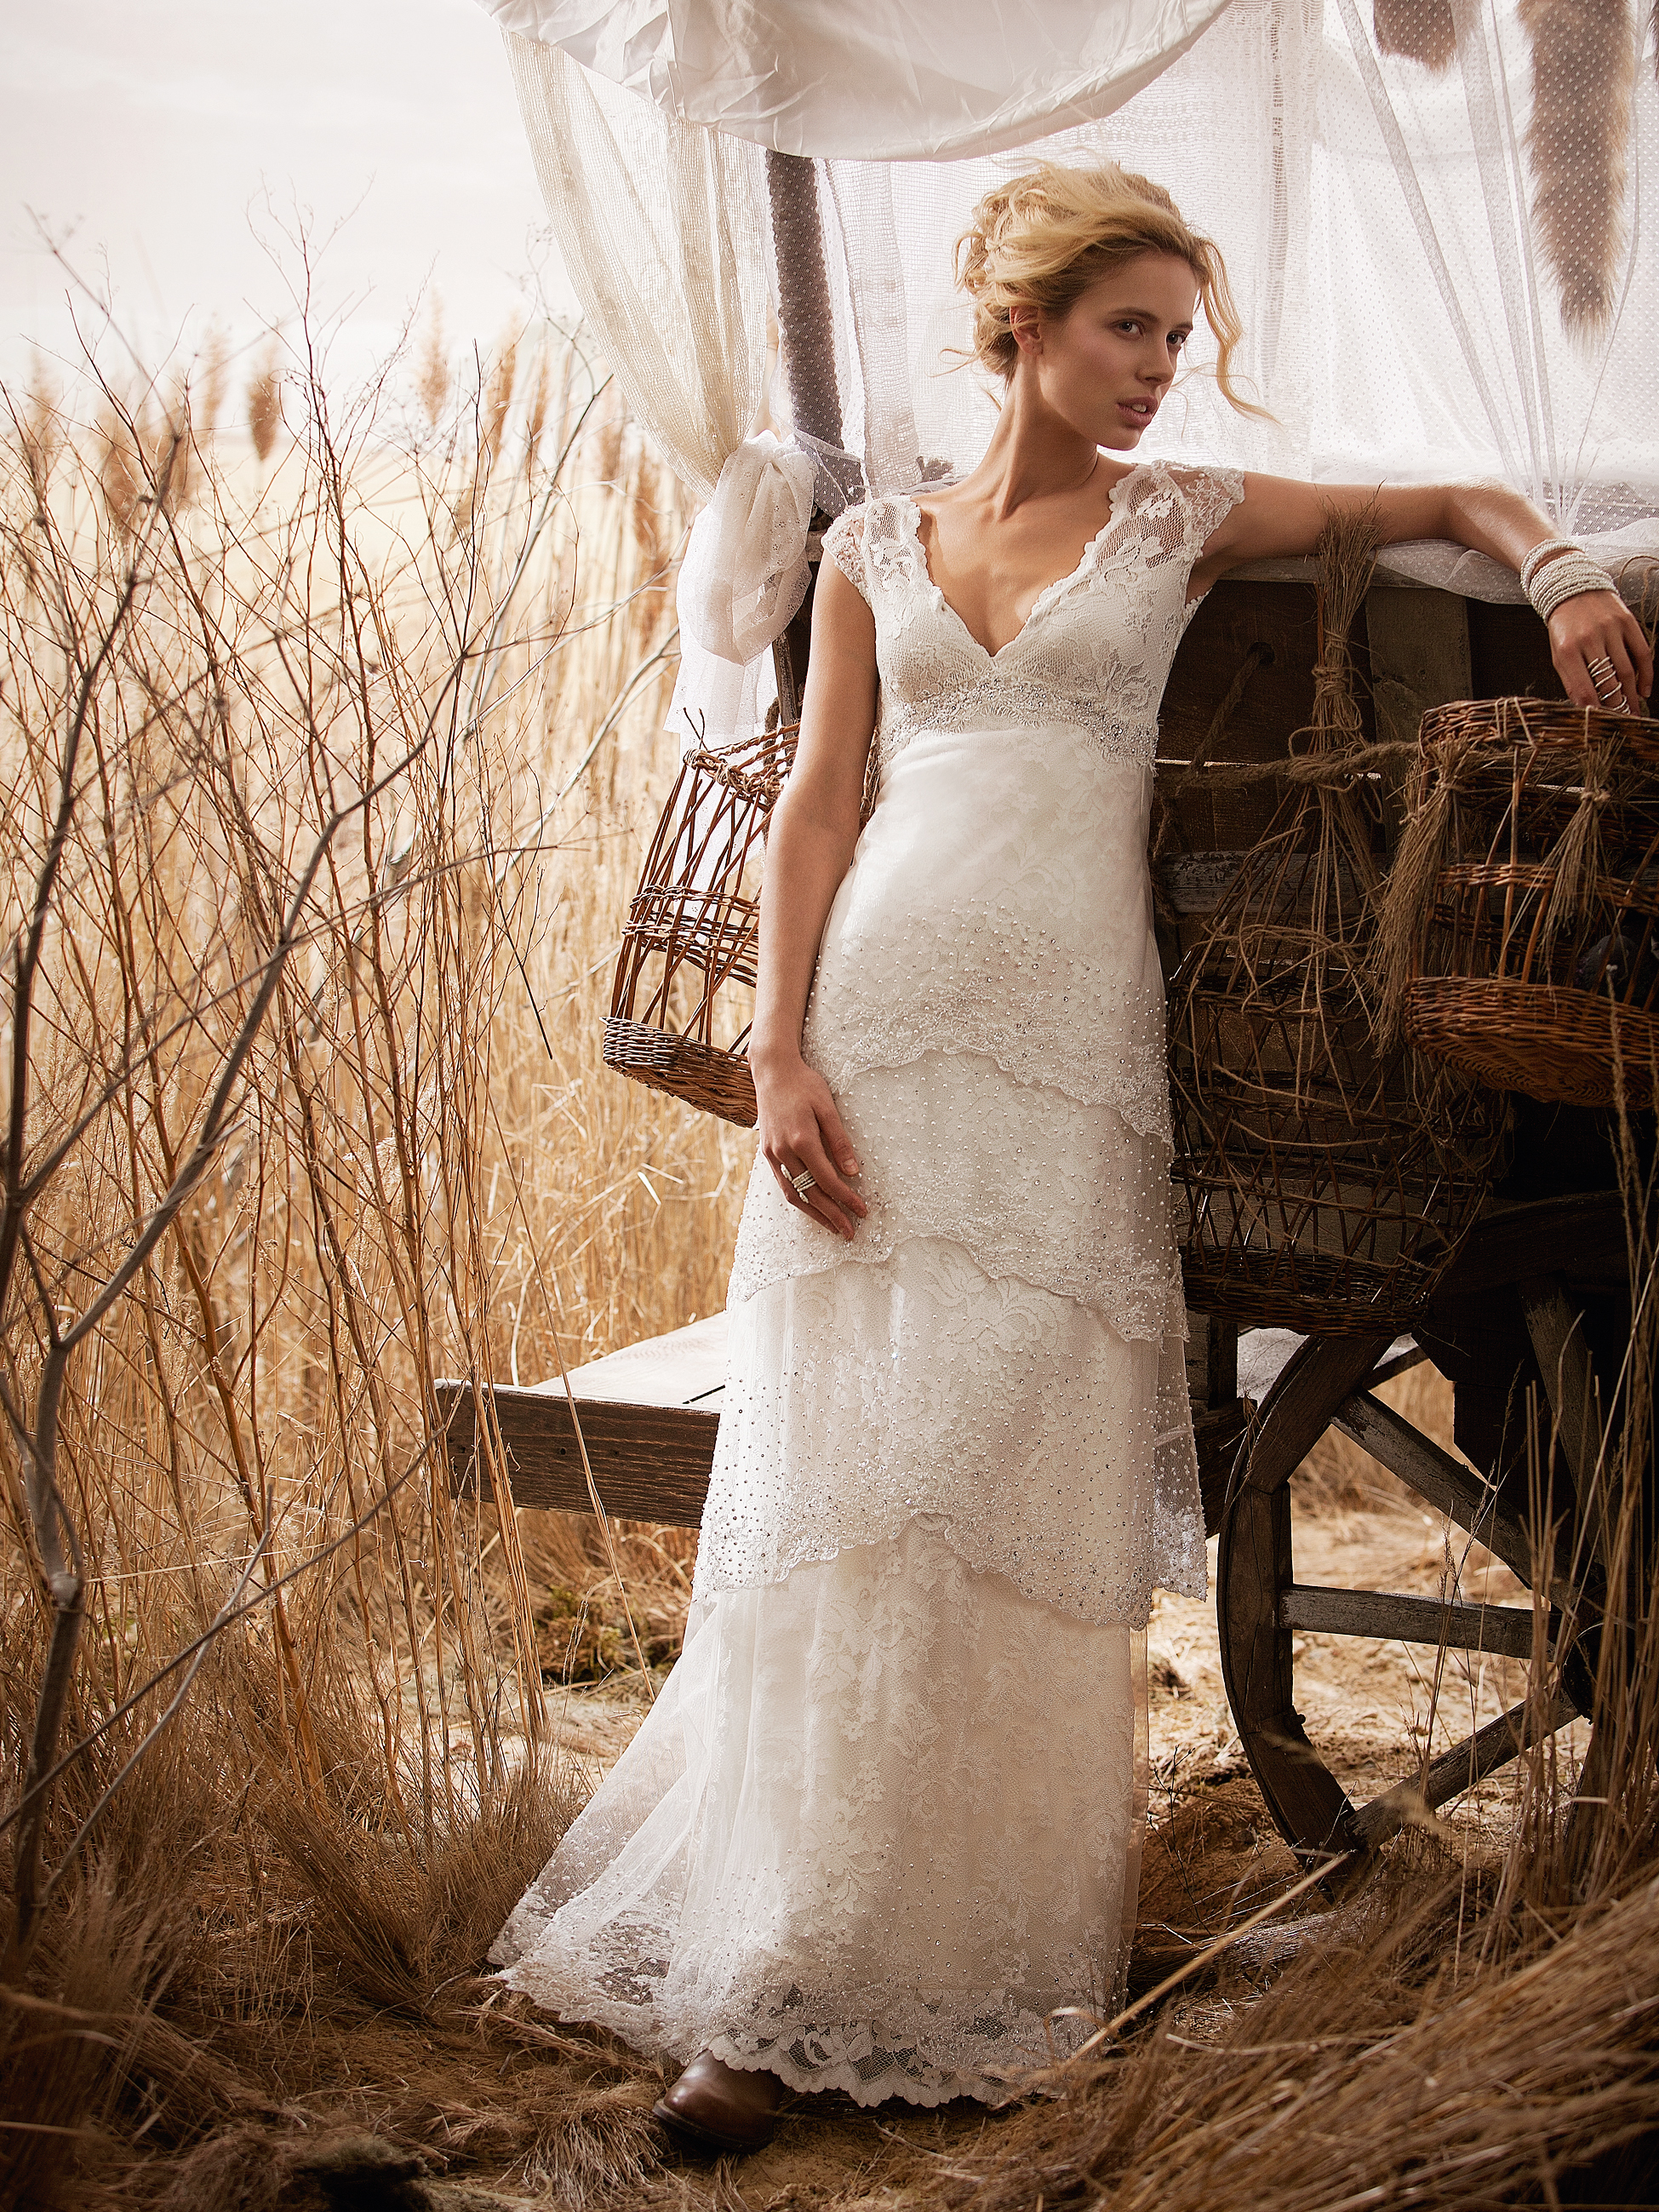 Wedding Gowns From Olvis - Rustic Wedding Chic